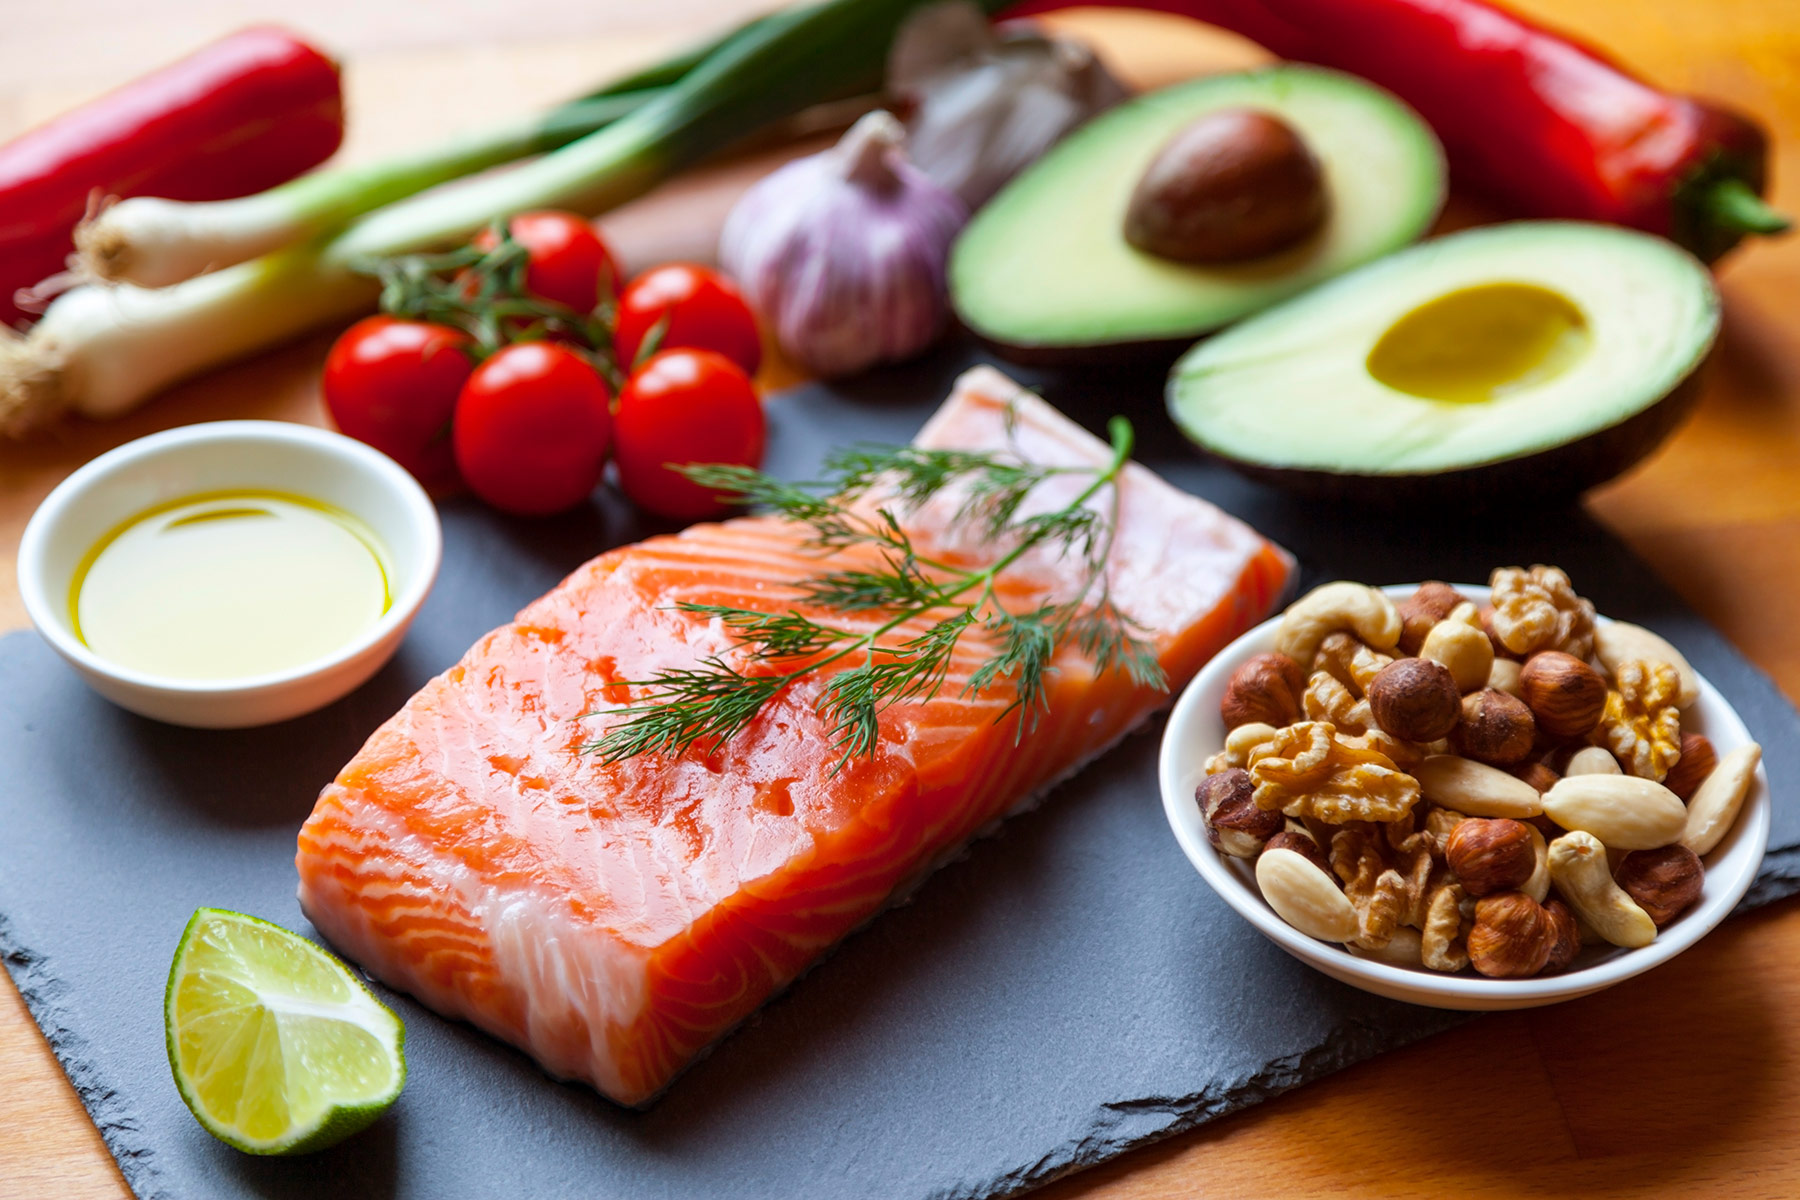 Mediterranean Diet Review: Foods & Weight Loss Effectiveness